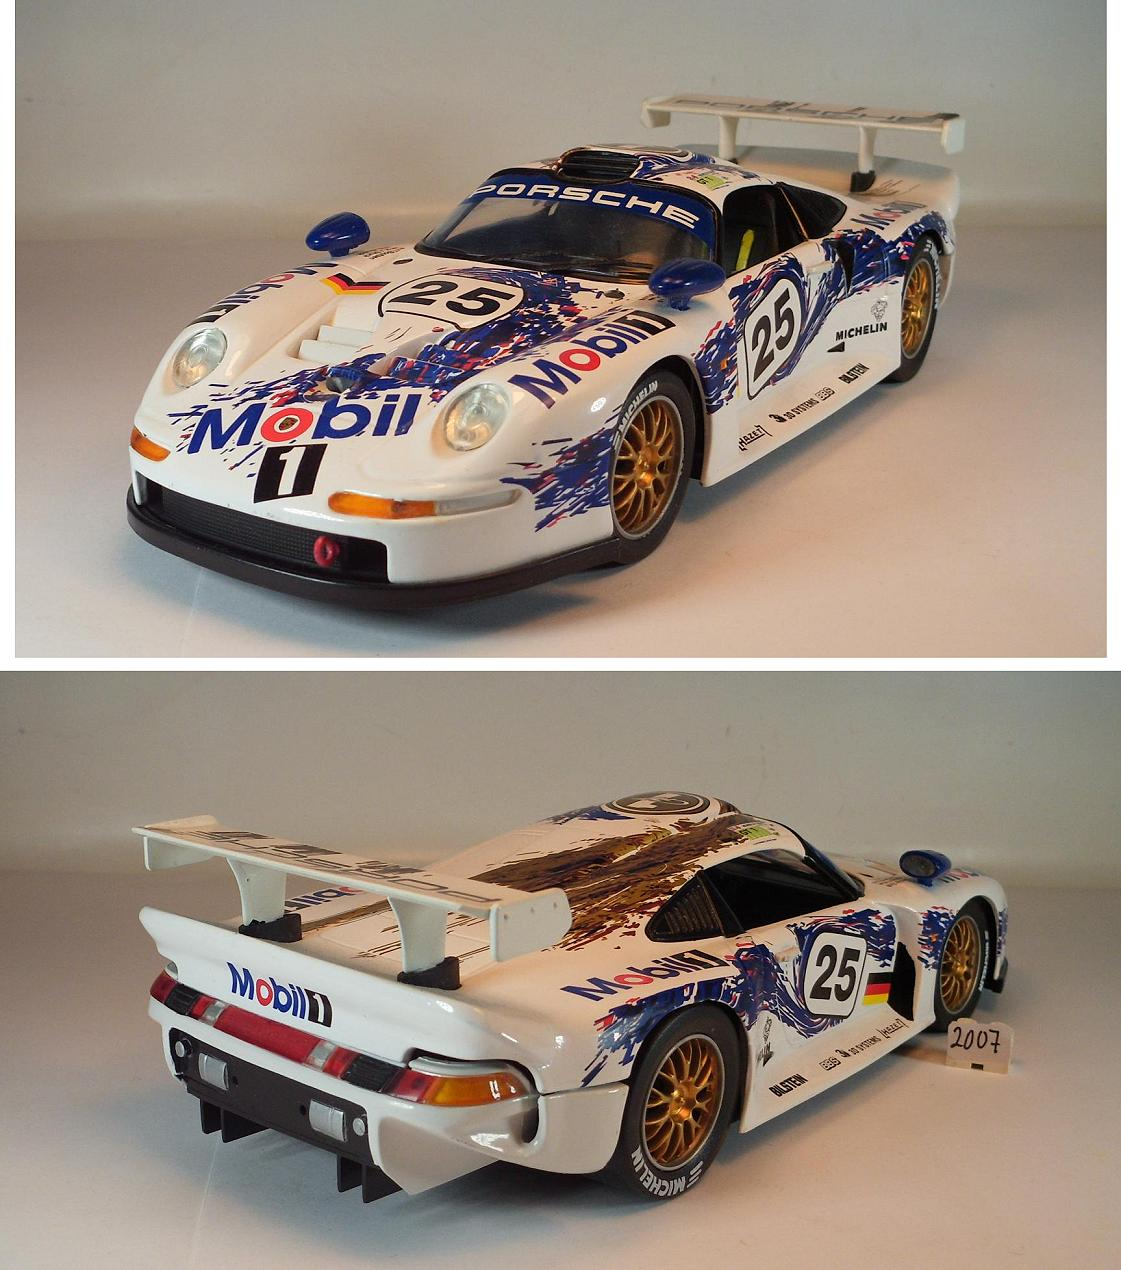 porsche 911 gt1 anson porsche 911 gt1 street modelcar anson 1 18 in white owned by 39 caddyman. Black Bedroom Furniture Sets. Home Design Ideas